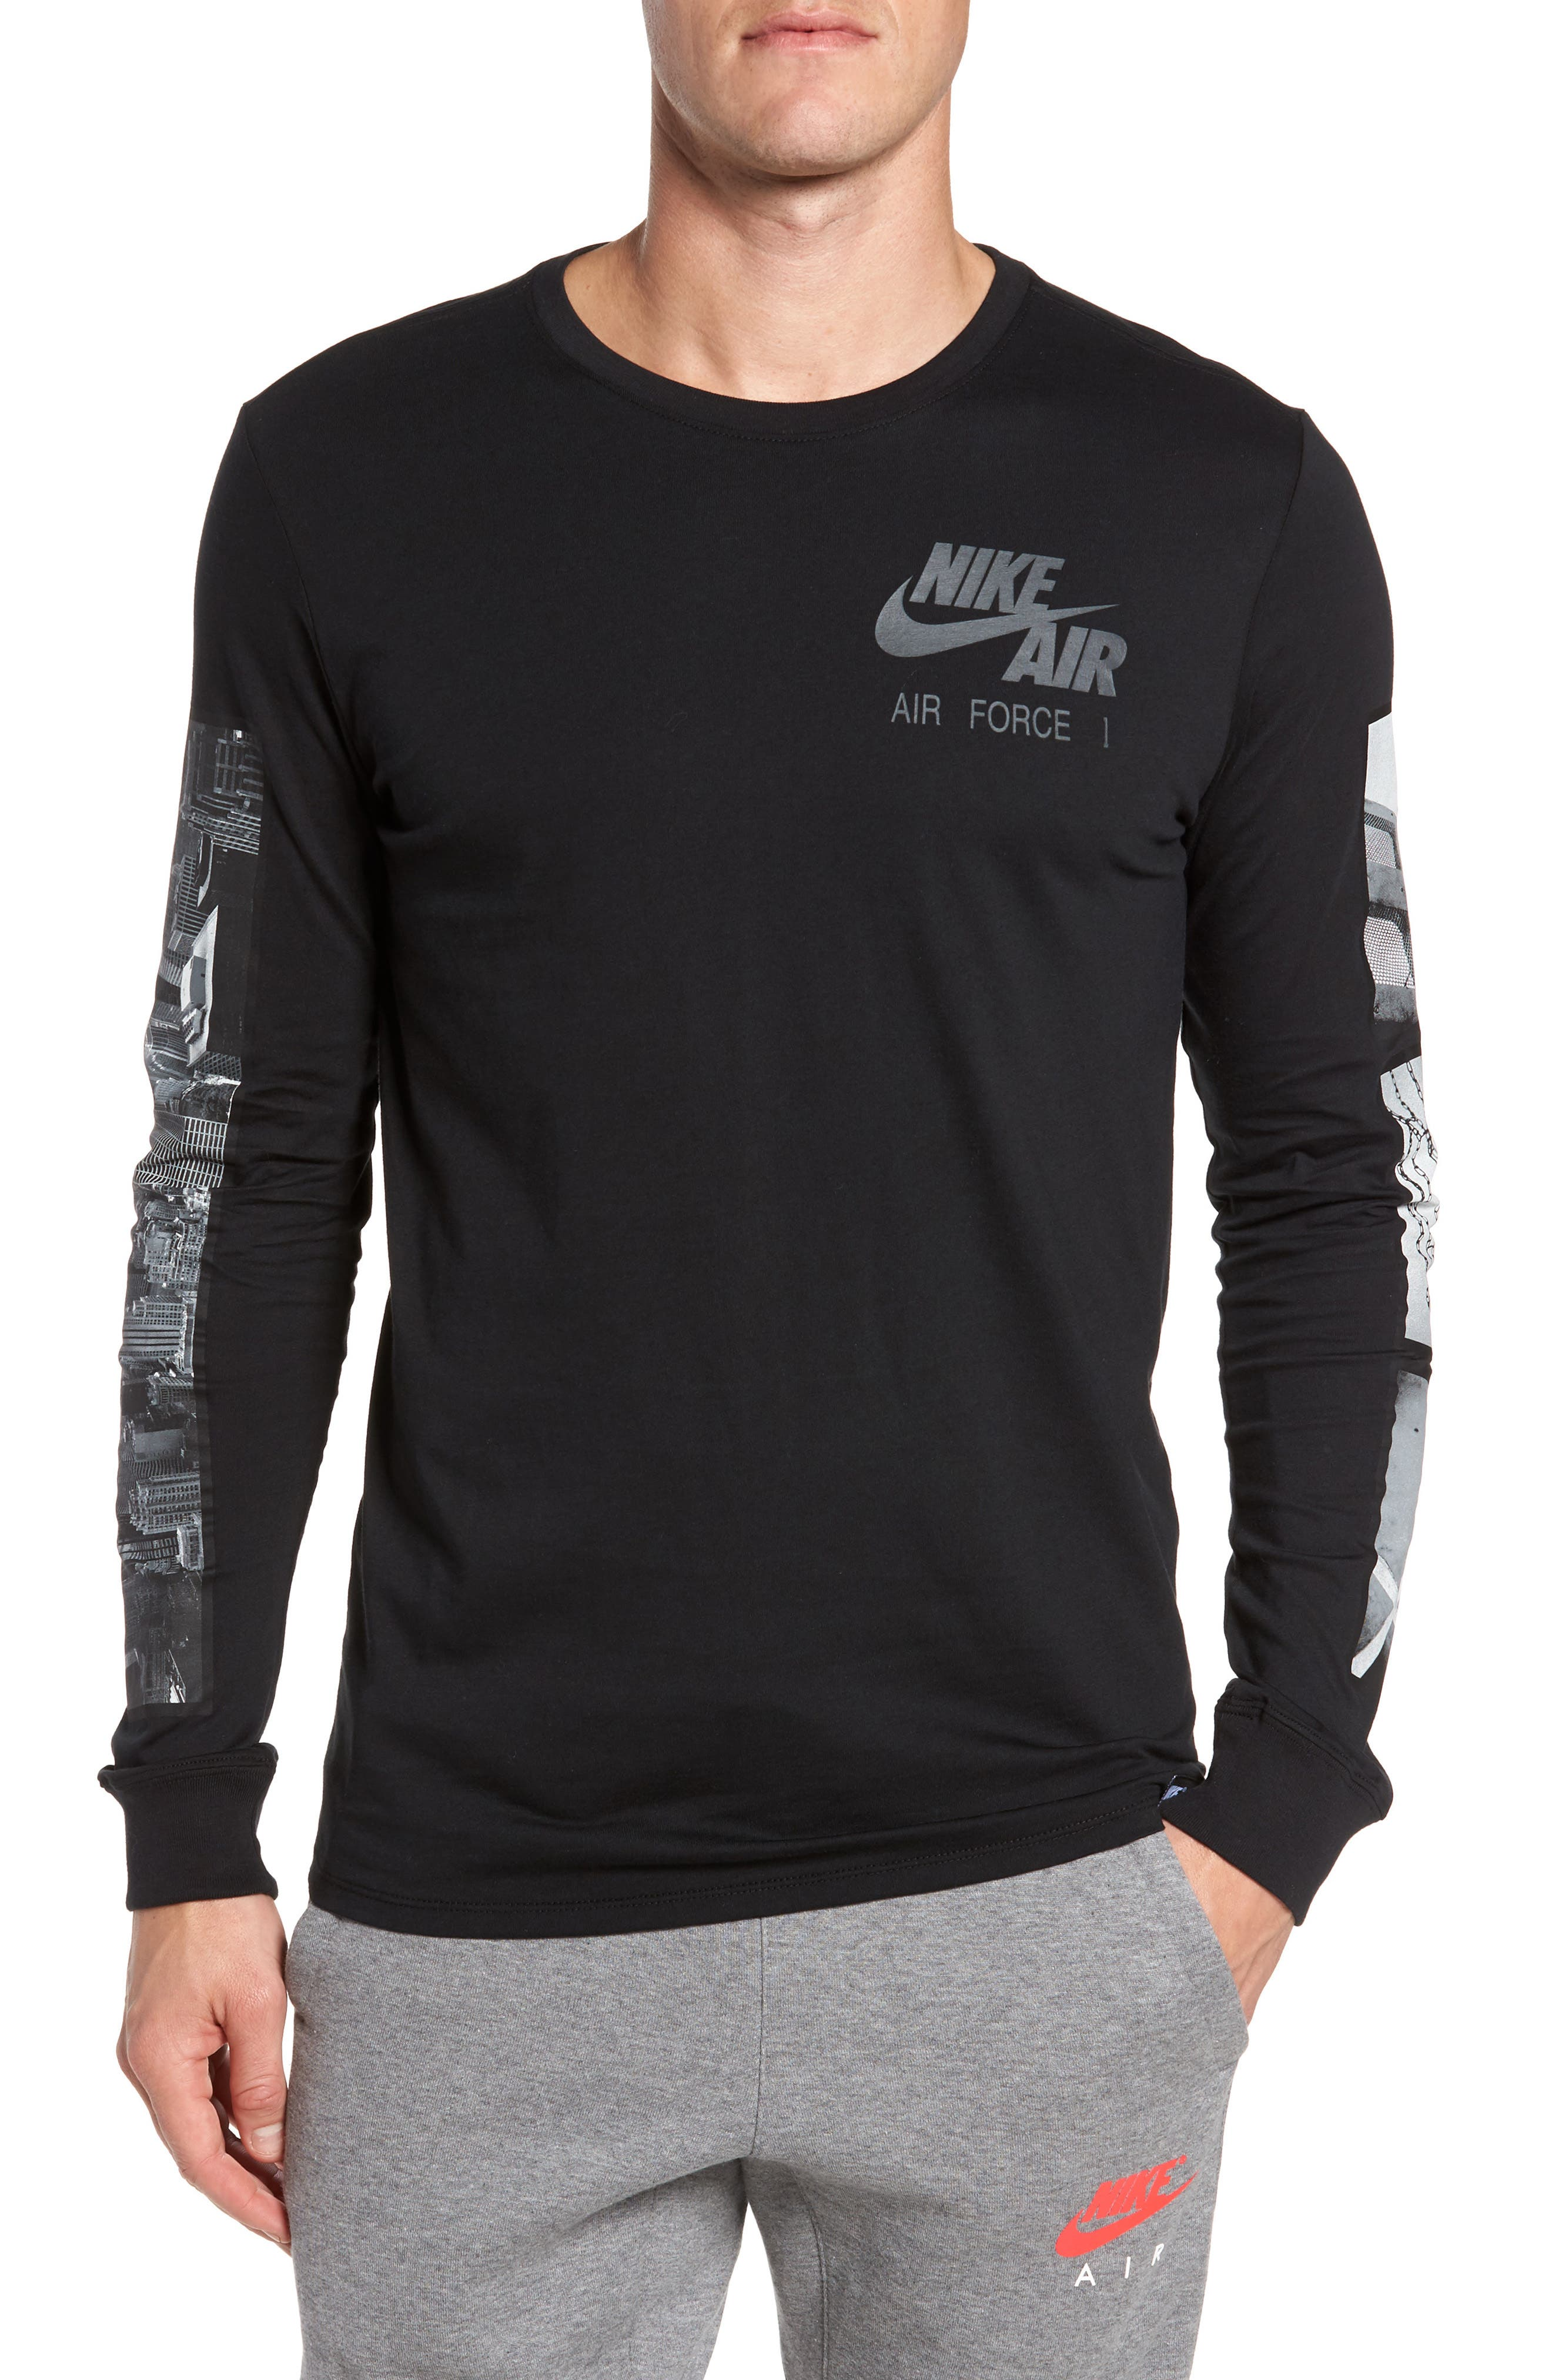 Air Force 1 Long Sleeve T-Shirt,                         Main,                         color, 010